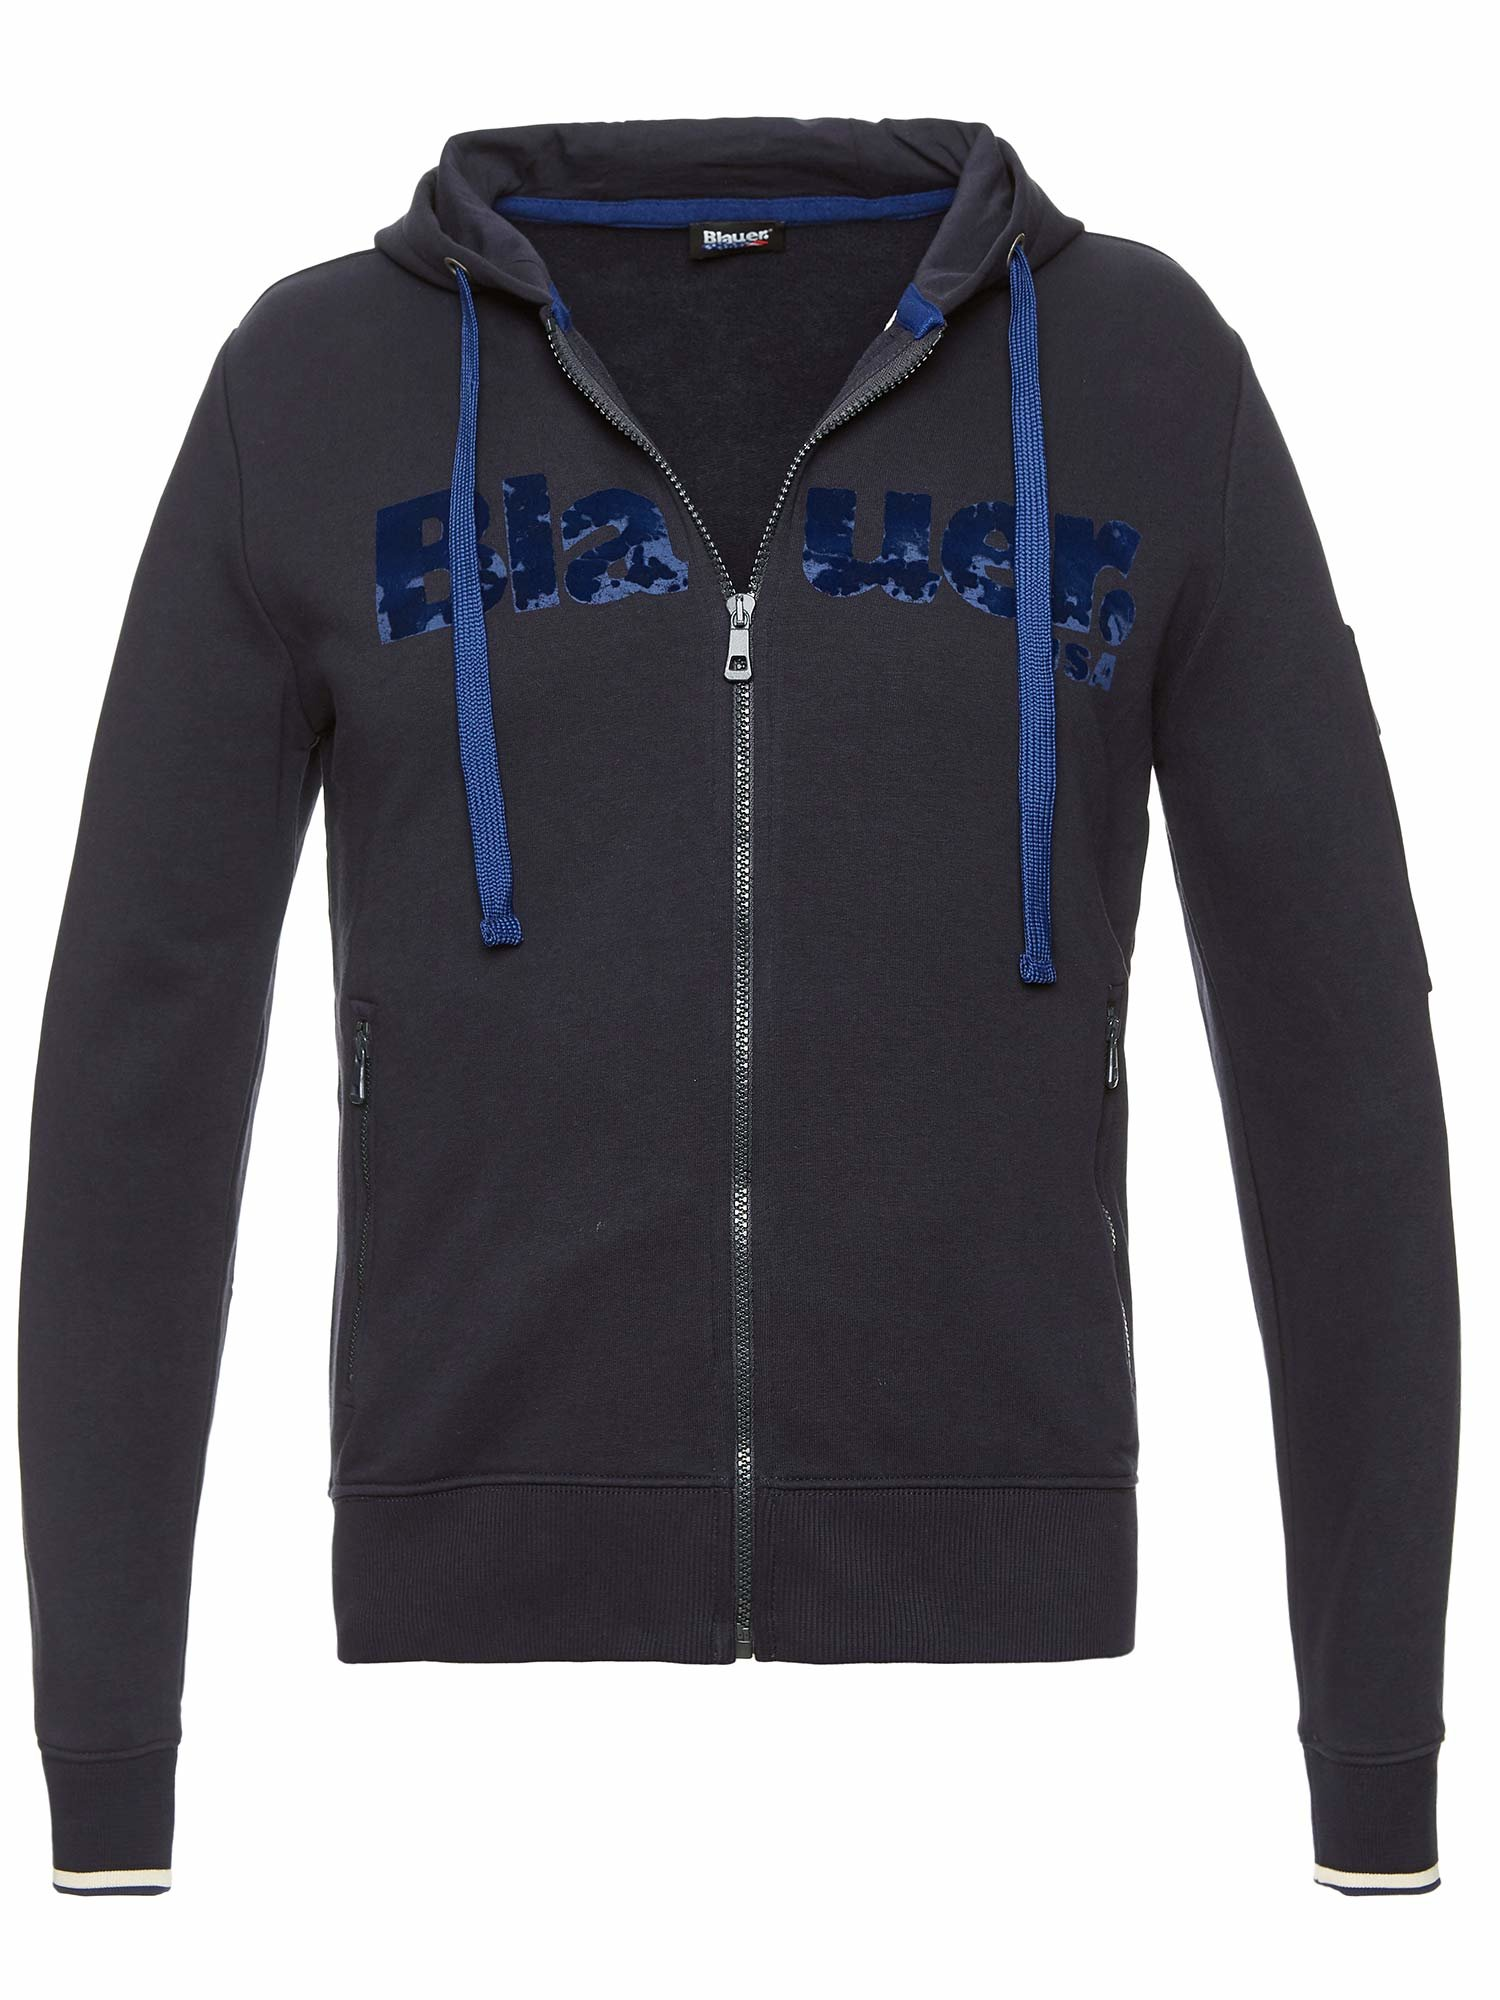 Blauer - OPEN SWEATSHIRT WITH HOOD - Dark Night Blue - Blauer